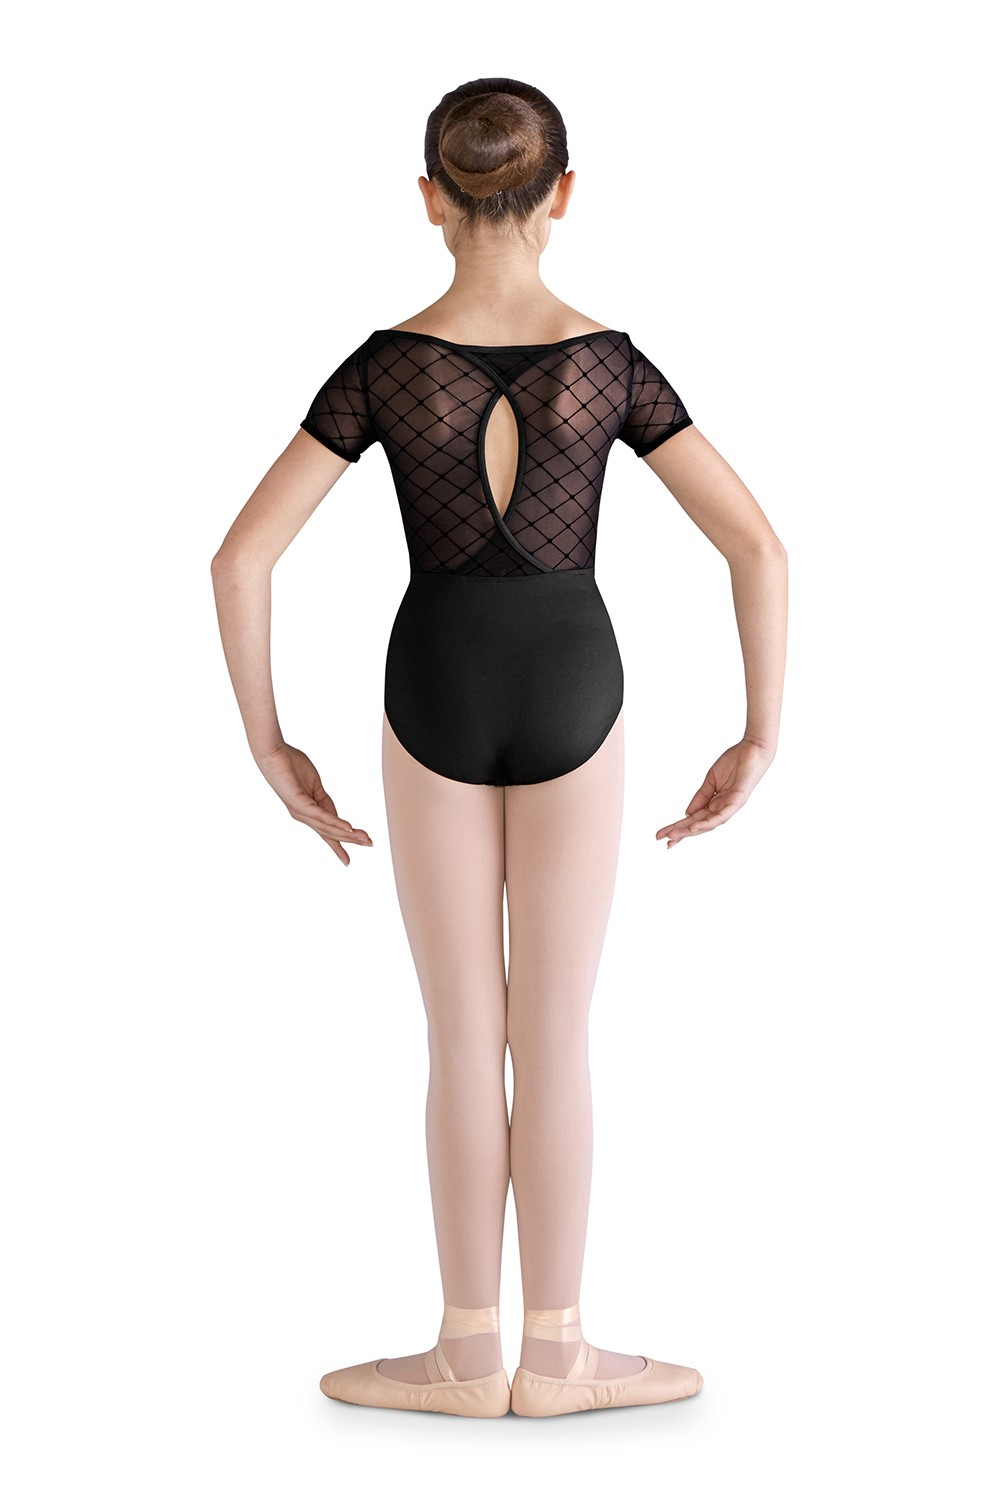 Paige Children's Dance Leotards